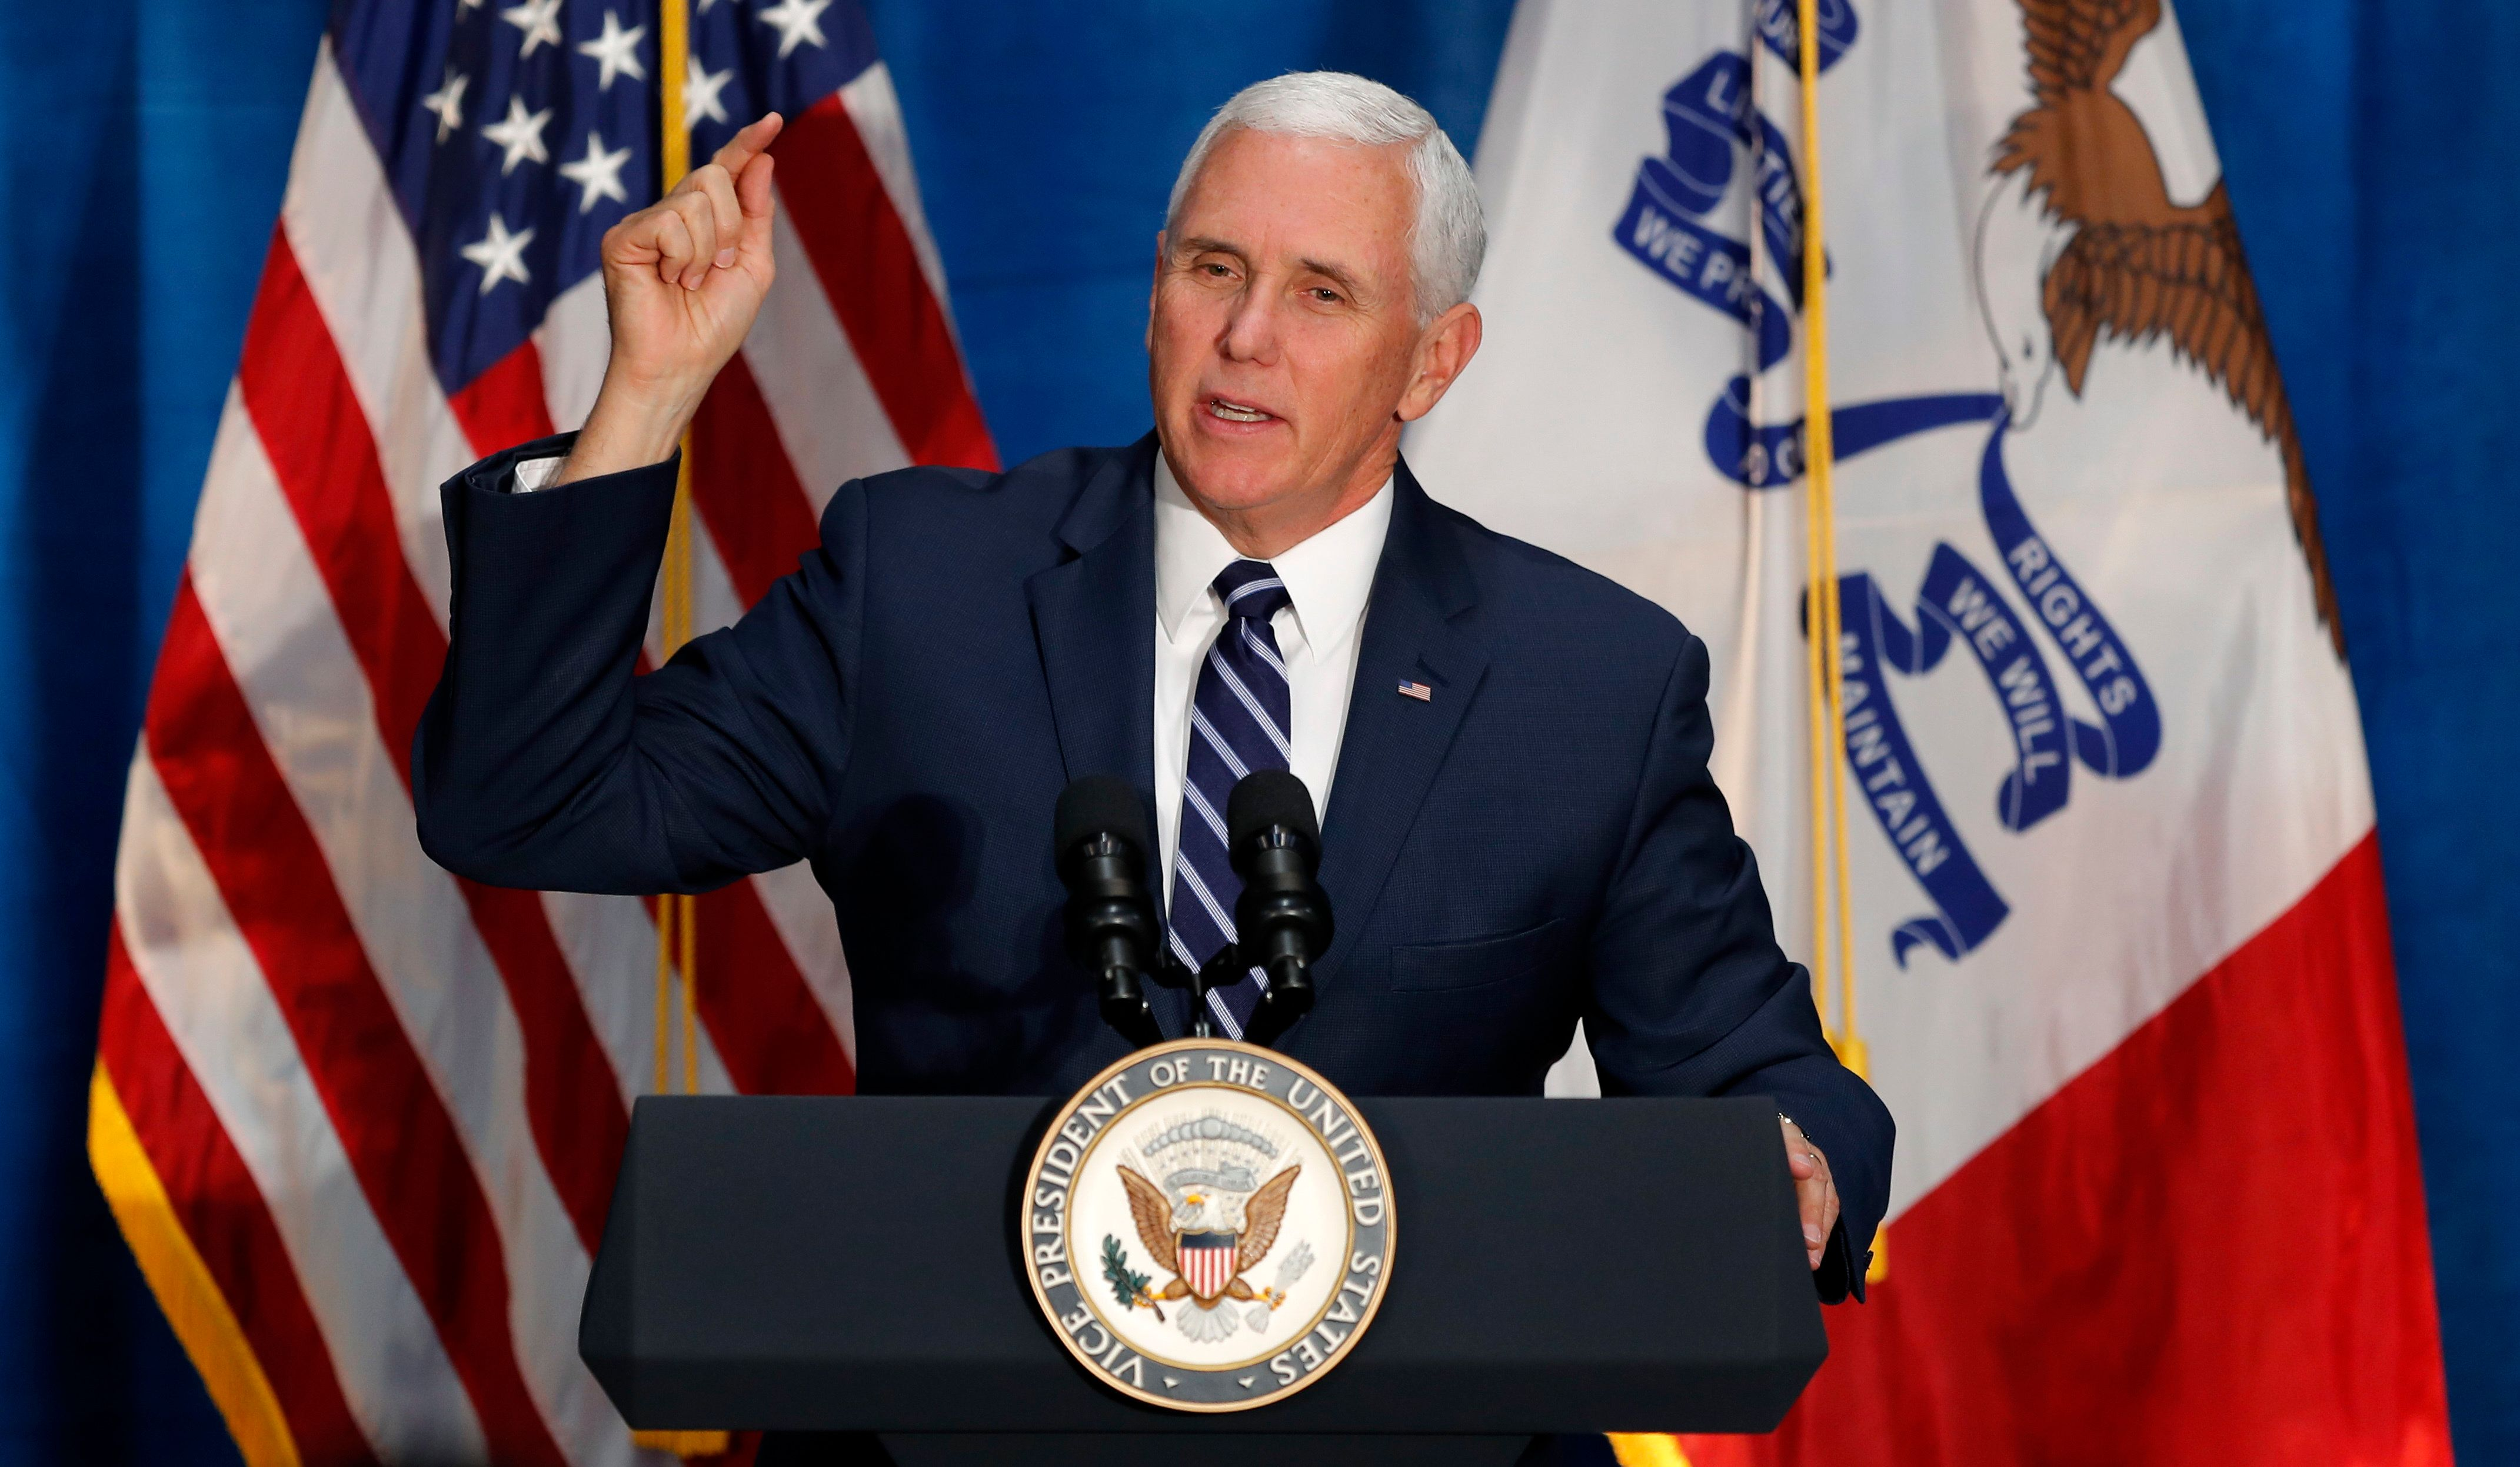 Vice President Mike Pence speaks during a rally for U.S. Rep. David Young, R-Iowa, Friday, Oct. 19, 2018, in Des Moines, Iowa. (AP Photo/Charlie Neibergall)